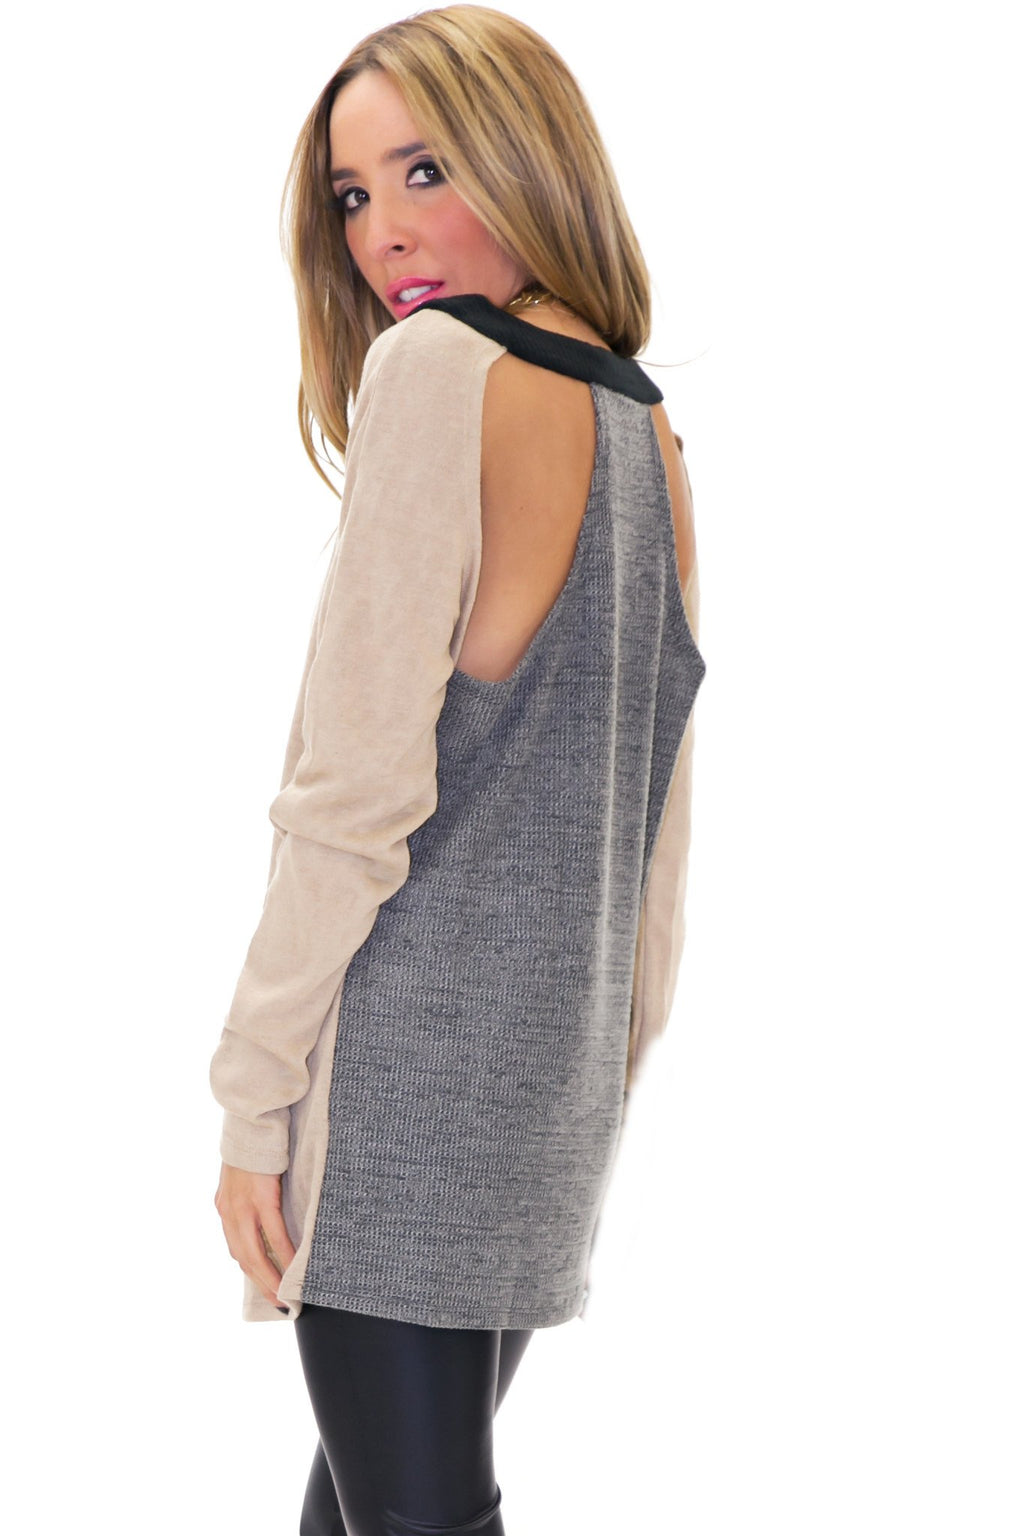 HAYWORTH CUTOUT SWEATER - Haute & Rebellious